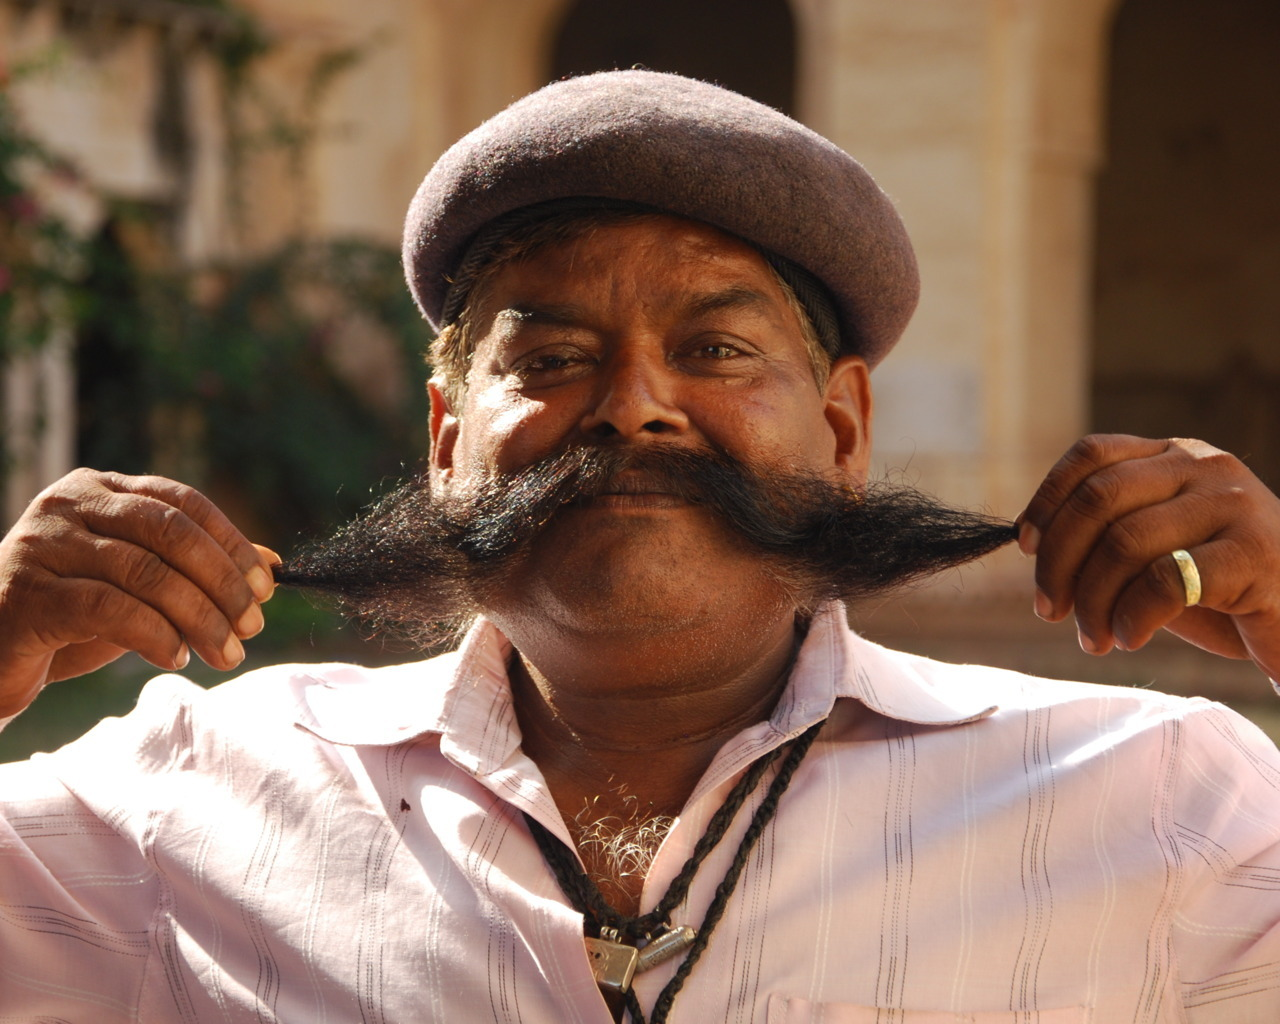 best moustache award, Bundi